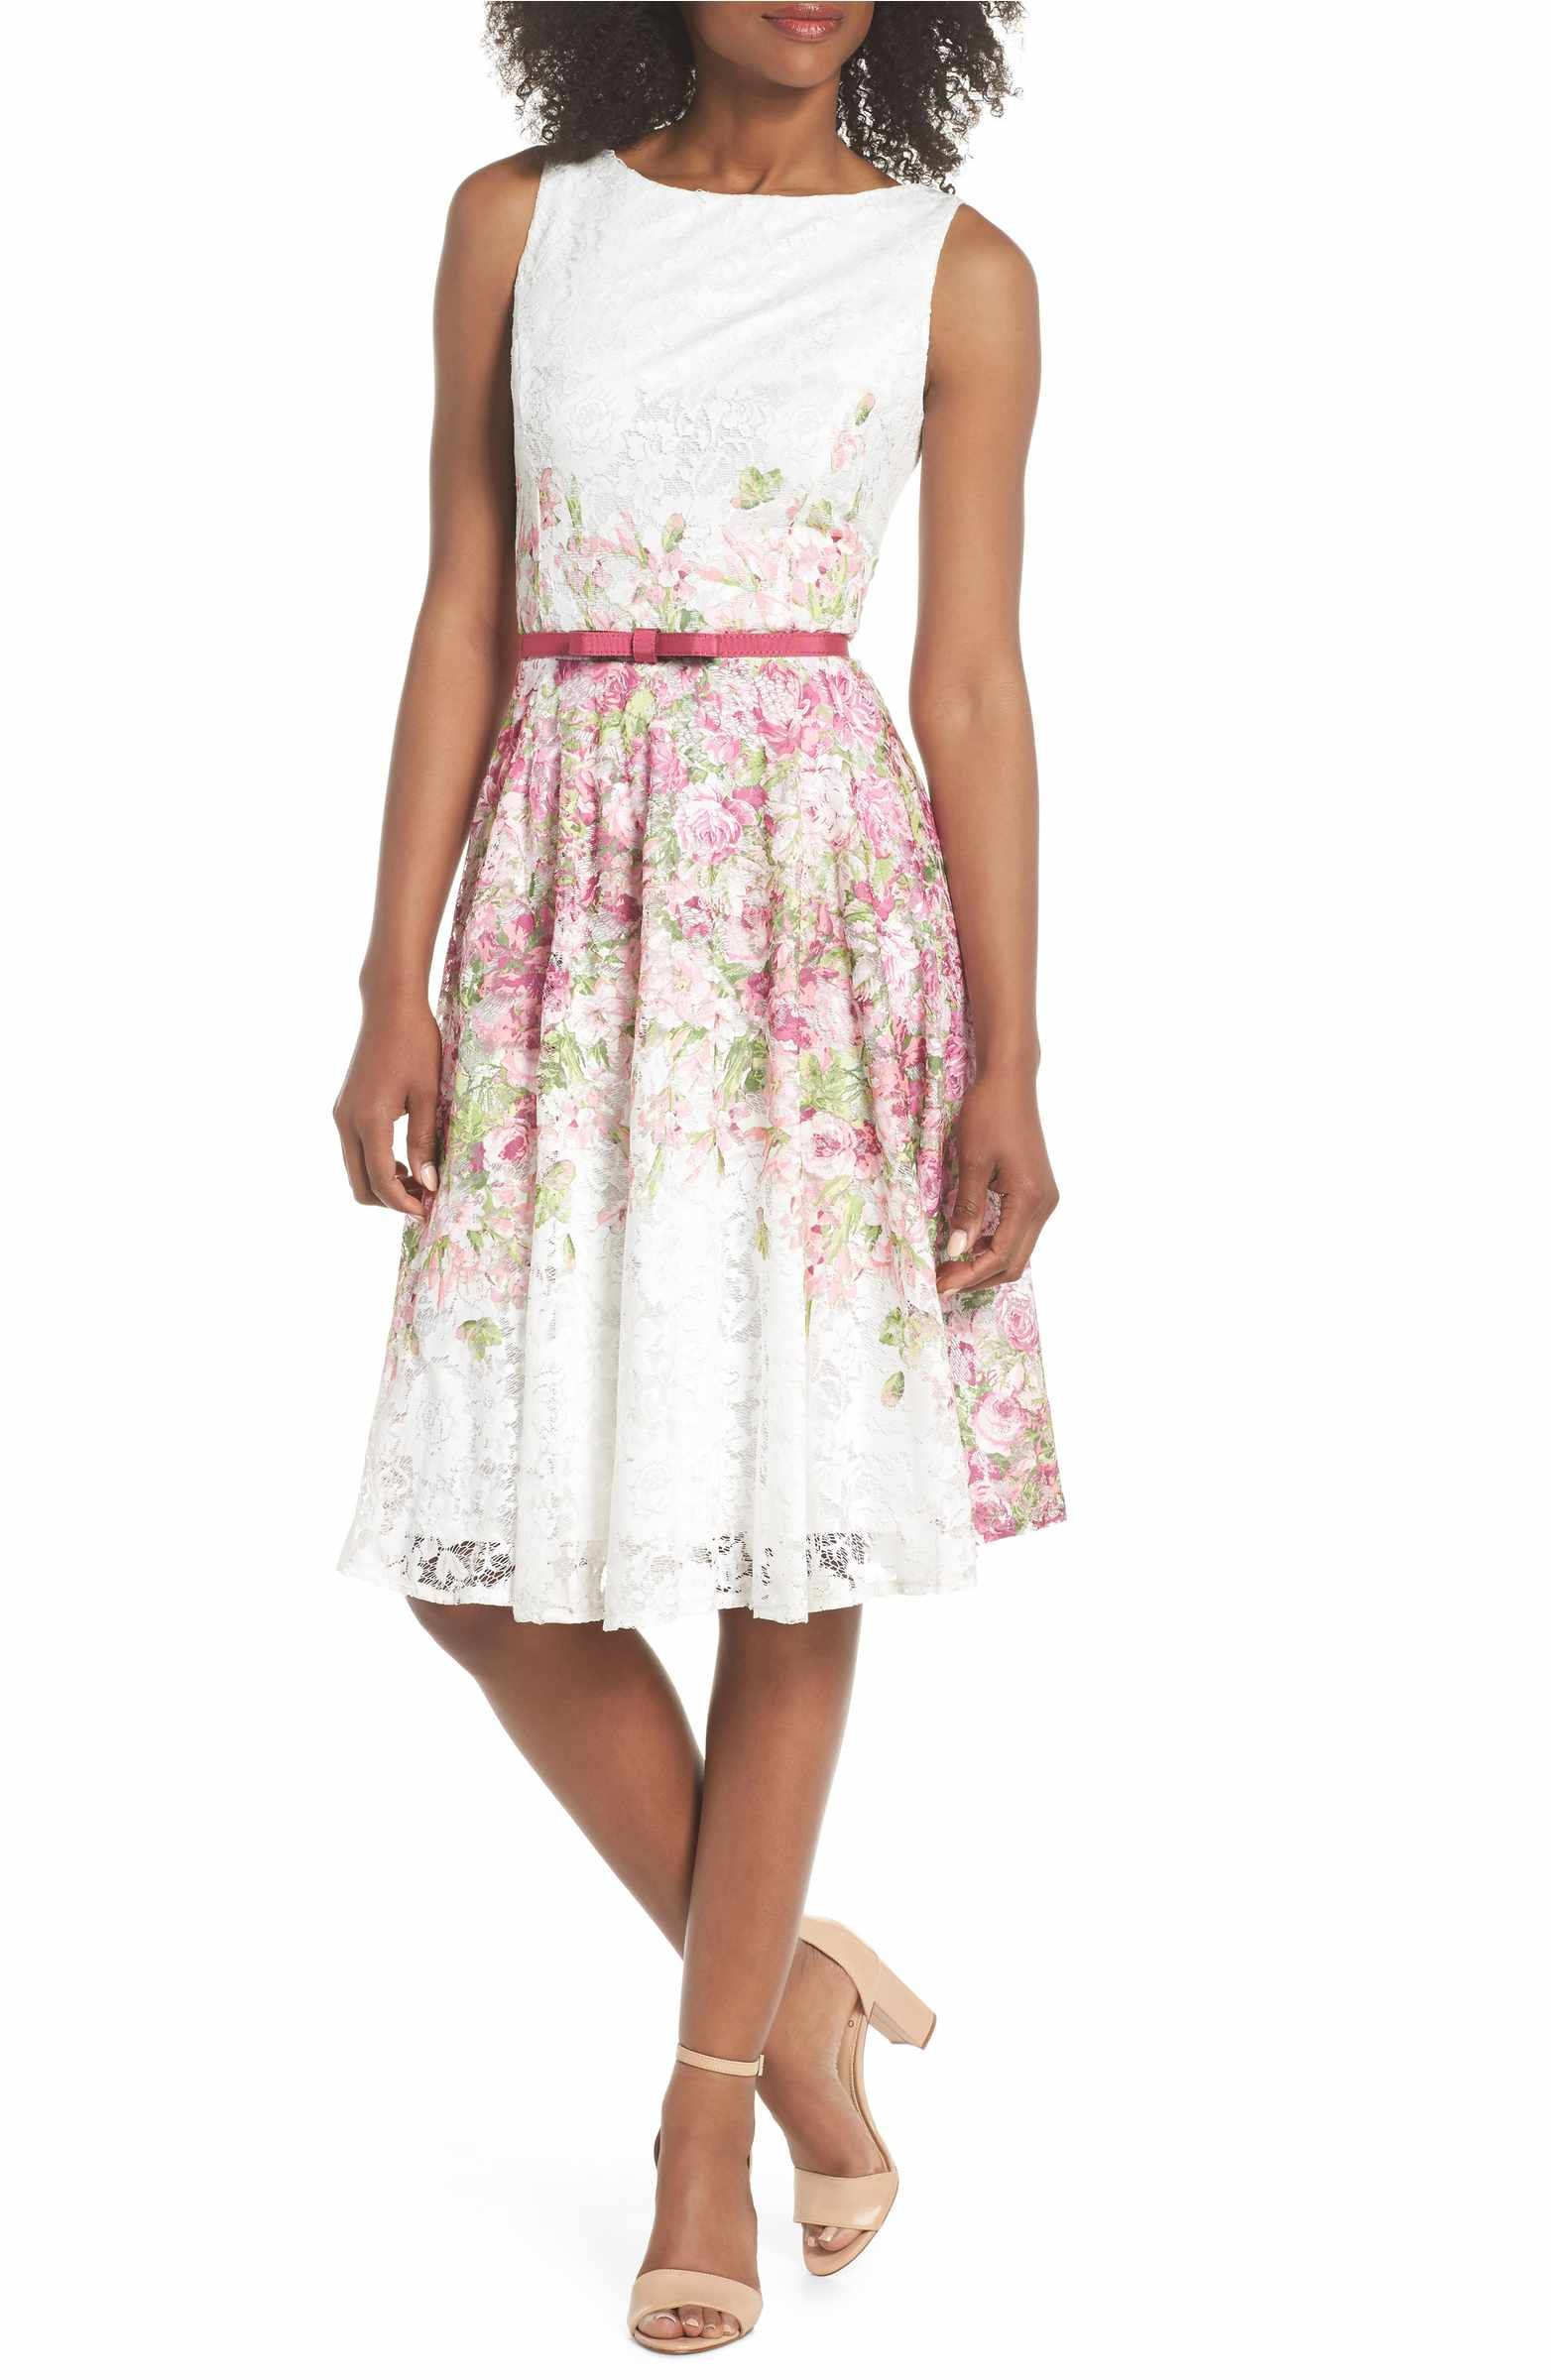 Gabby Skye Belted Floral Lace Fit Flare Dress Nordstrom Fit Flare Dress Flare Dress Lace Frocks [ 2400 x 1564 Pixel ]